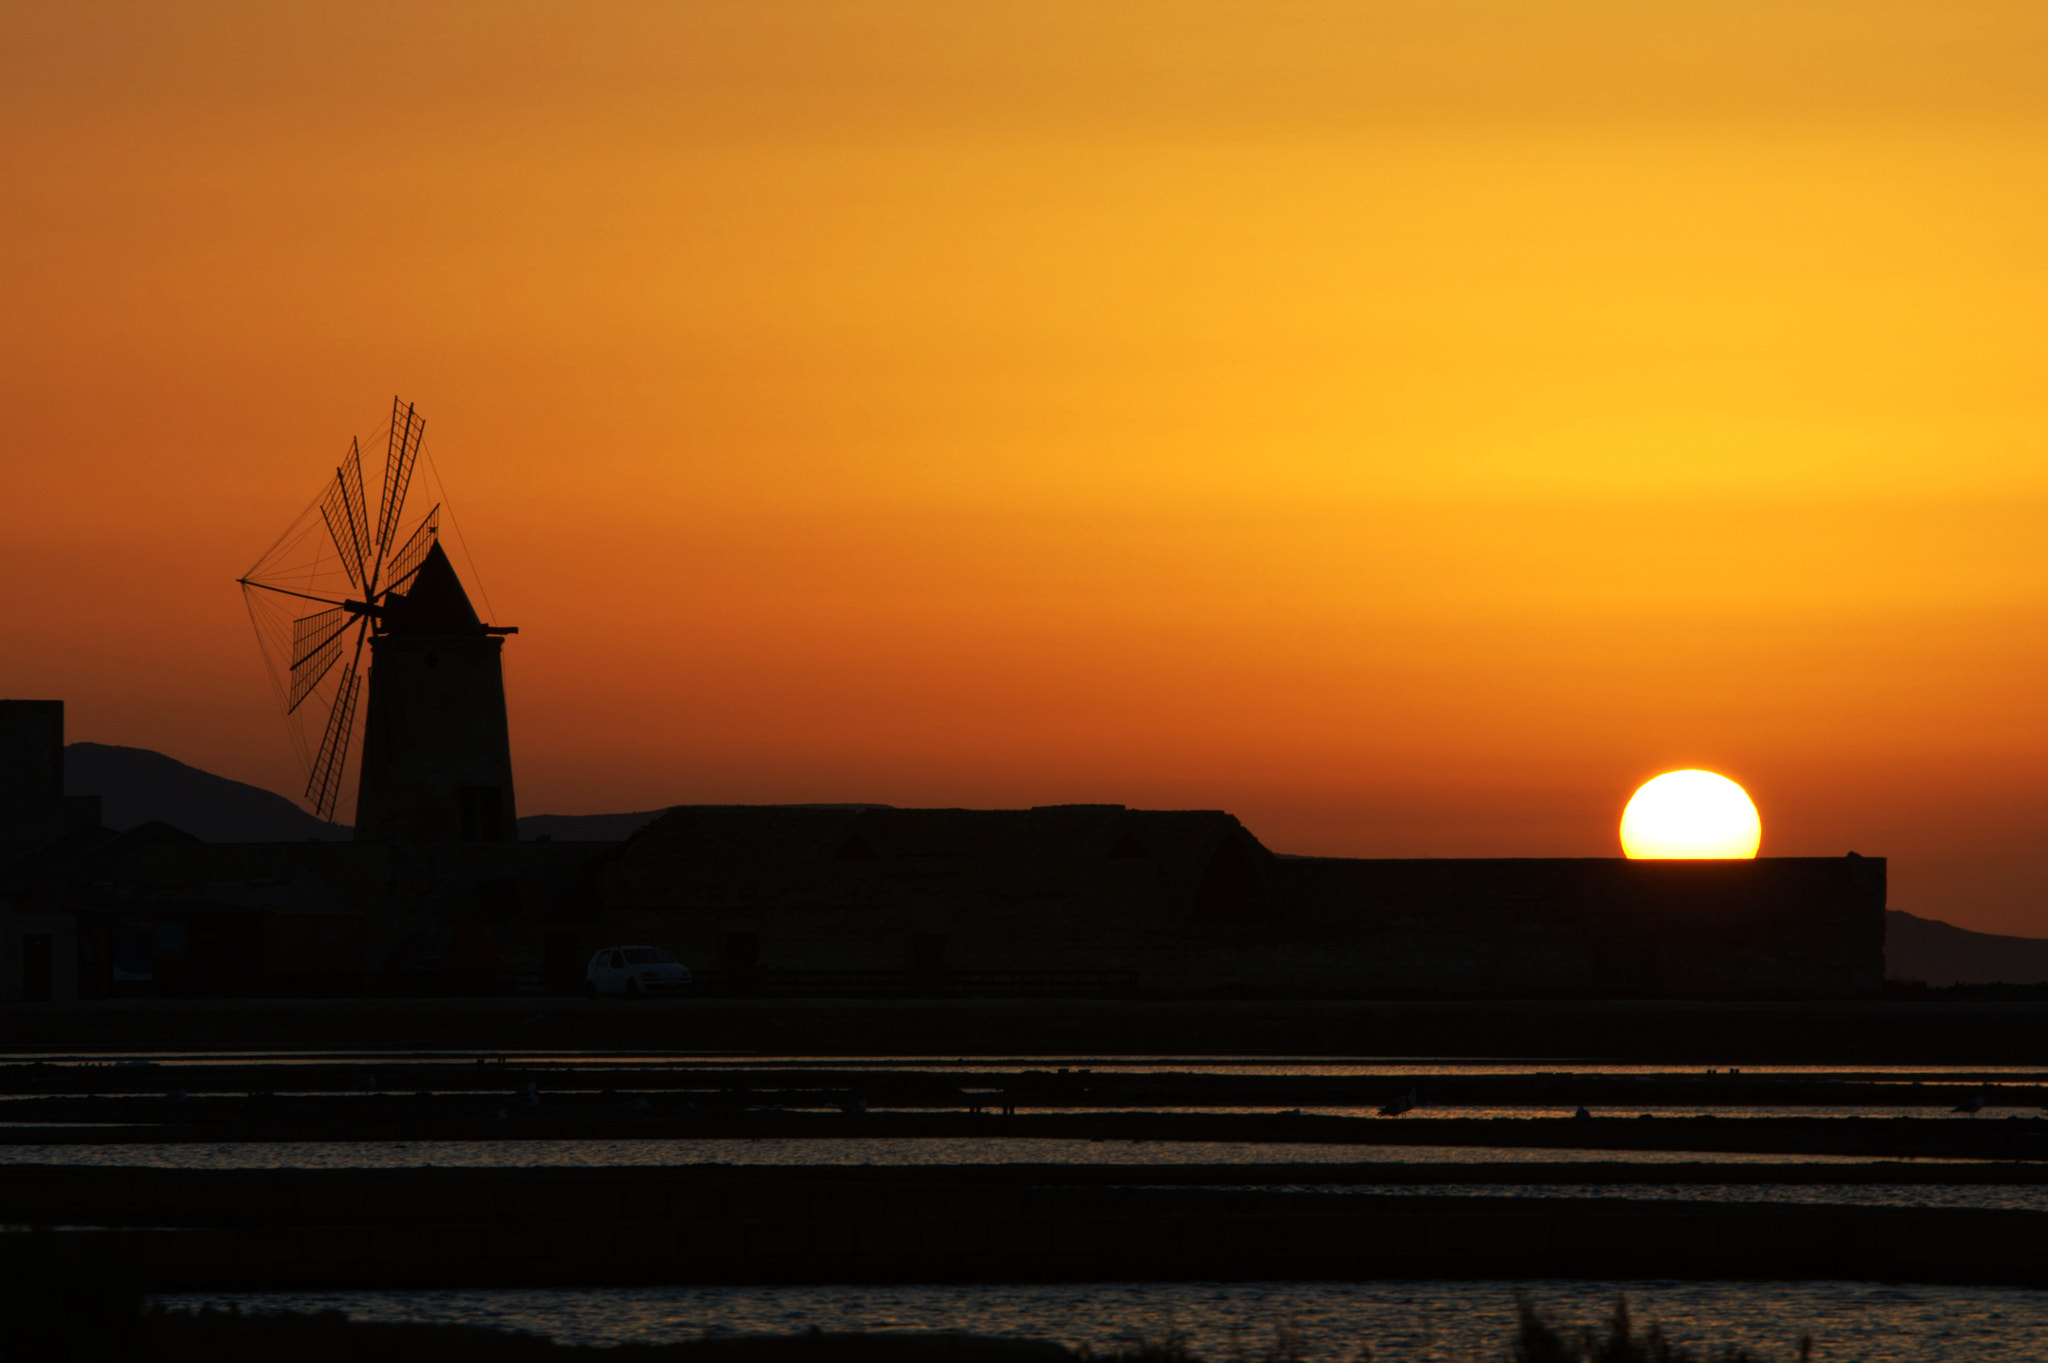 Photograph Sunset at the Salines of Trapani by Yulia R on 500px